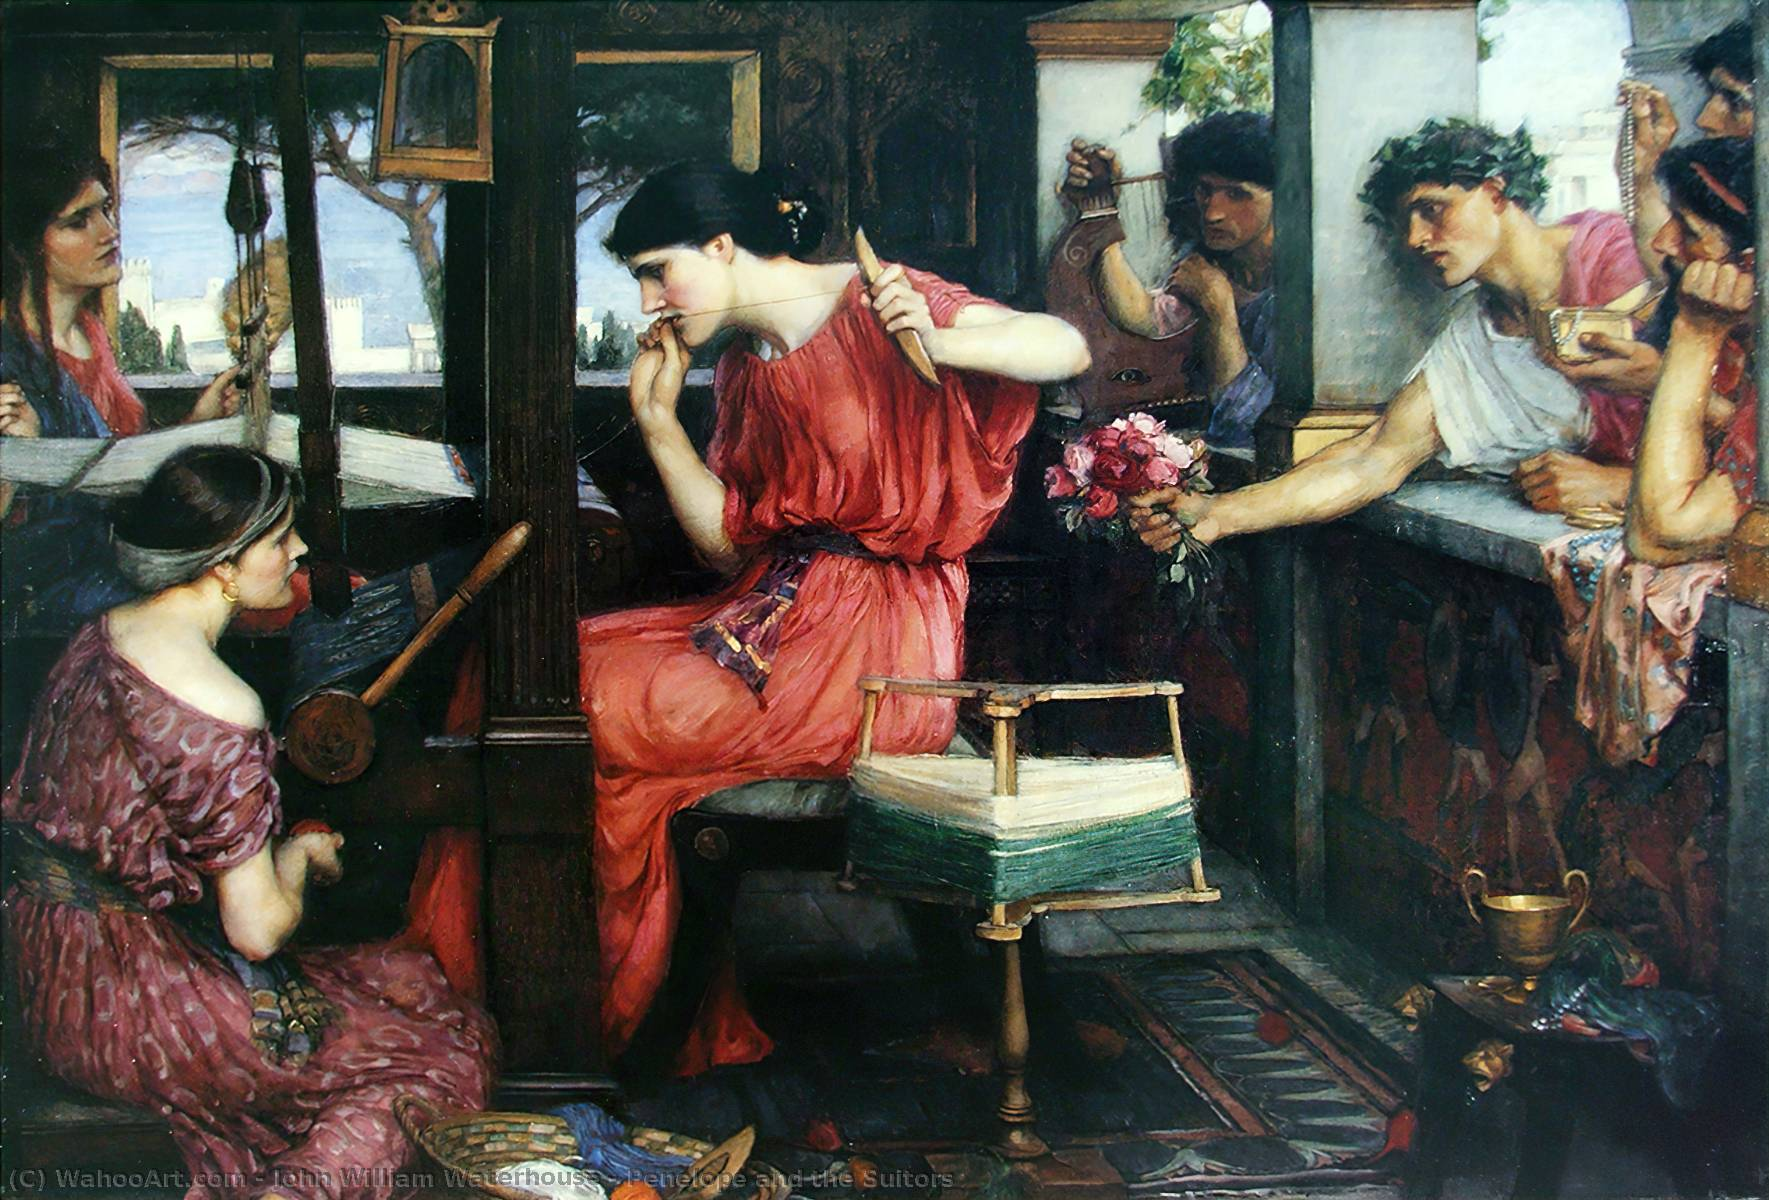 佩内洛普和求婚者, 1912 通过 John William Waterhouse (1849-1917, Italy) | 油畫 John William Waterhouse | WahooArt.com